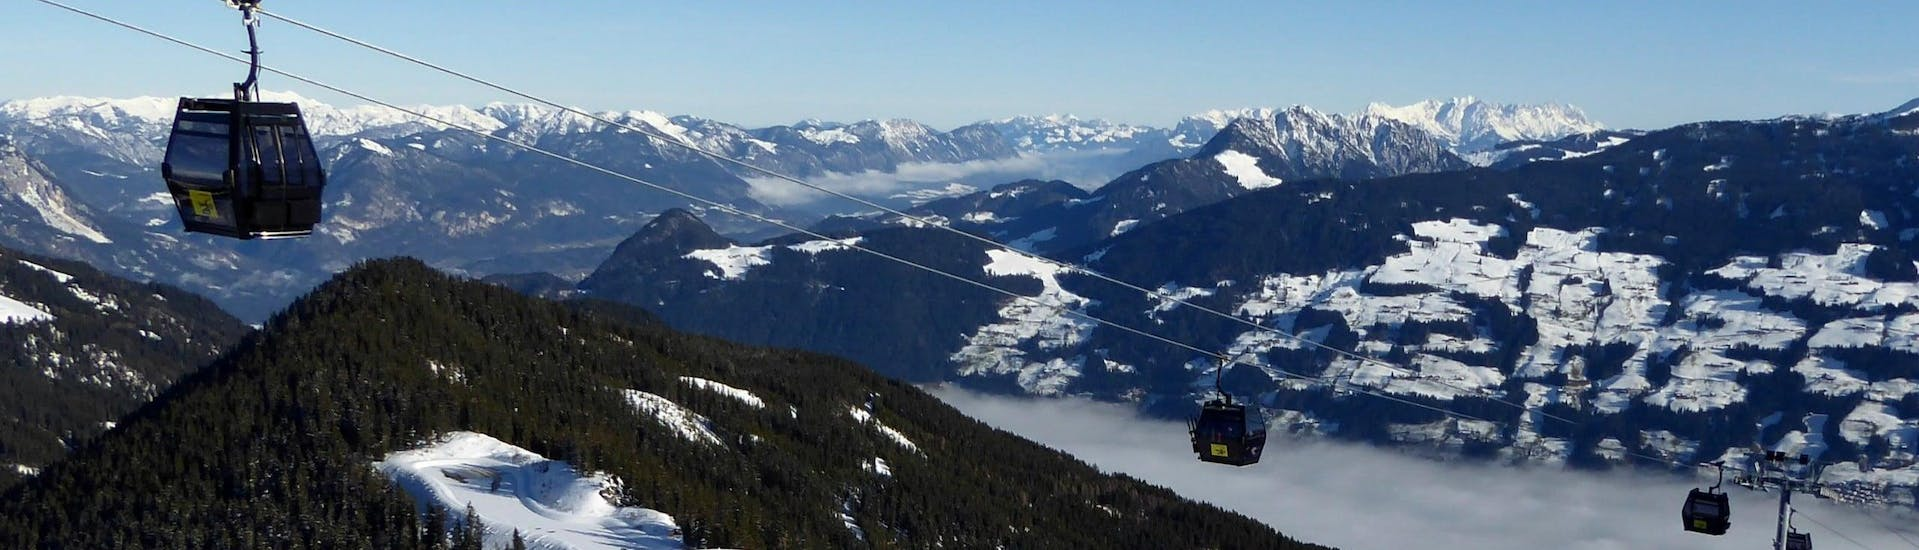 View over the sunny mountain landscape while learning to ski with the ski schools in Fügen-Spieljoch.